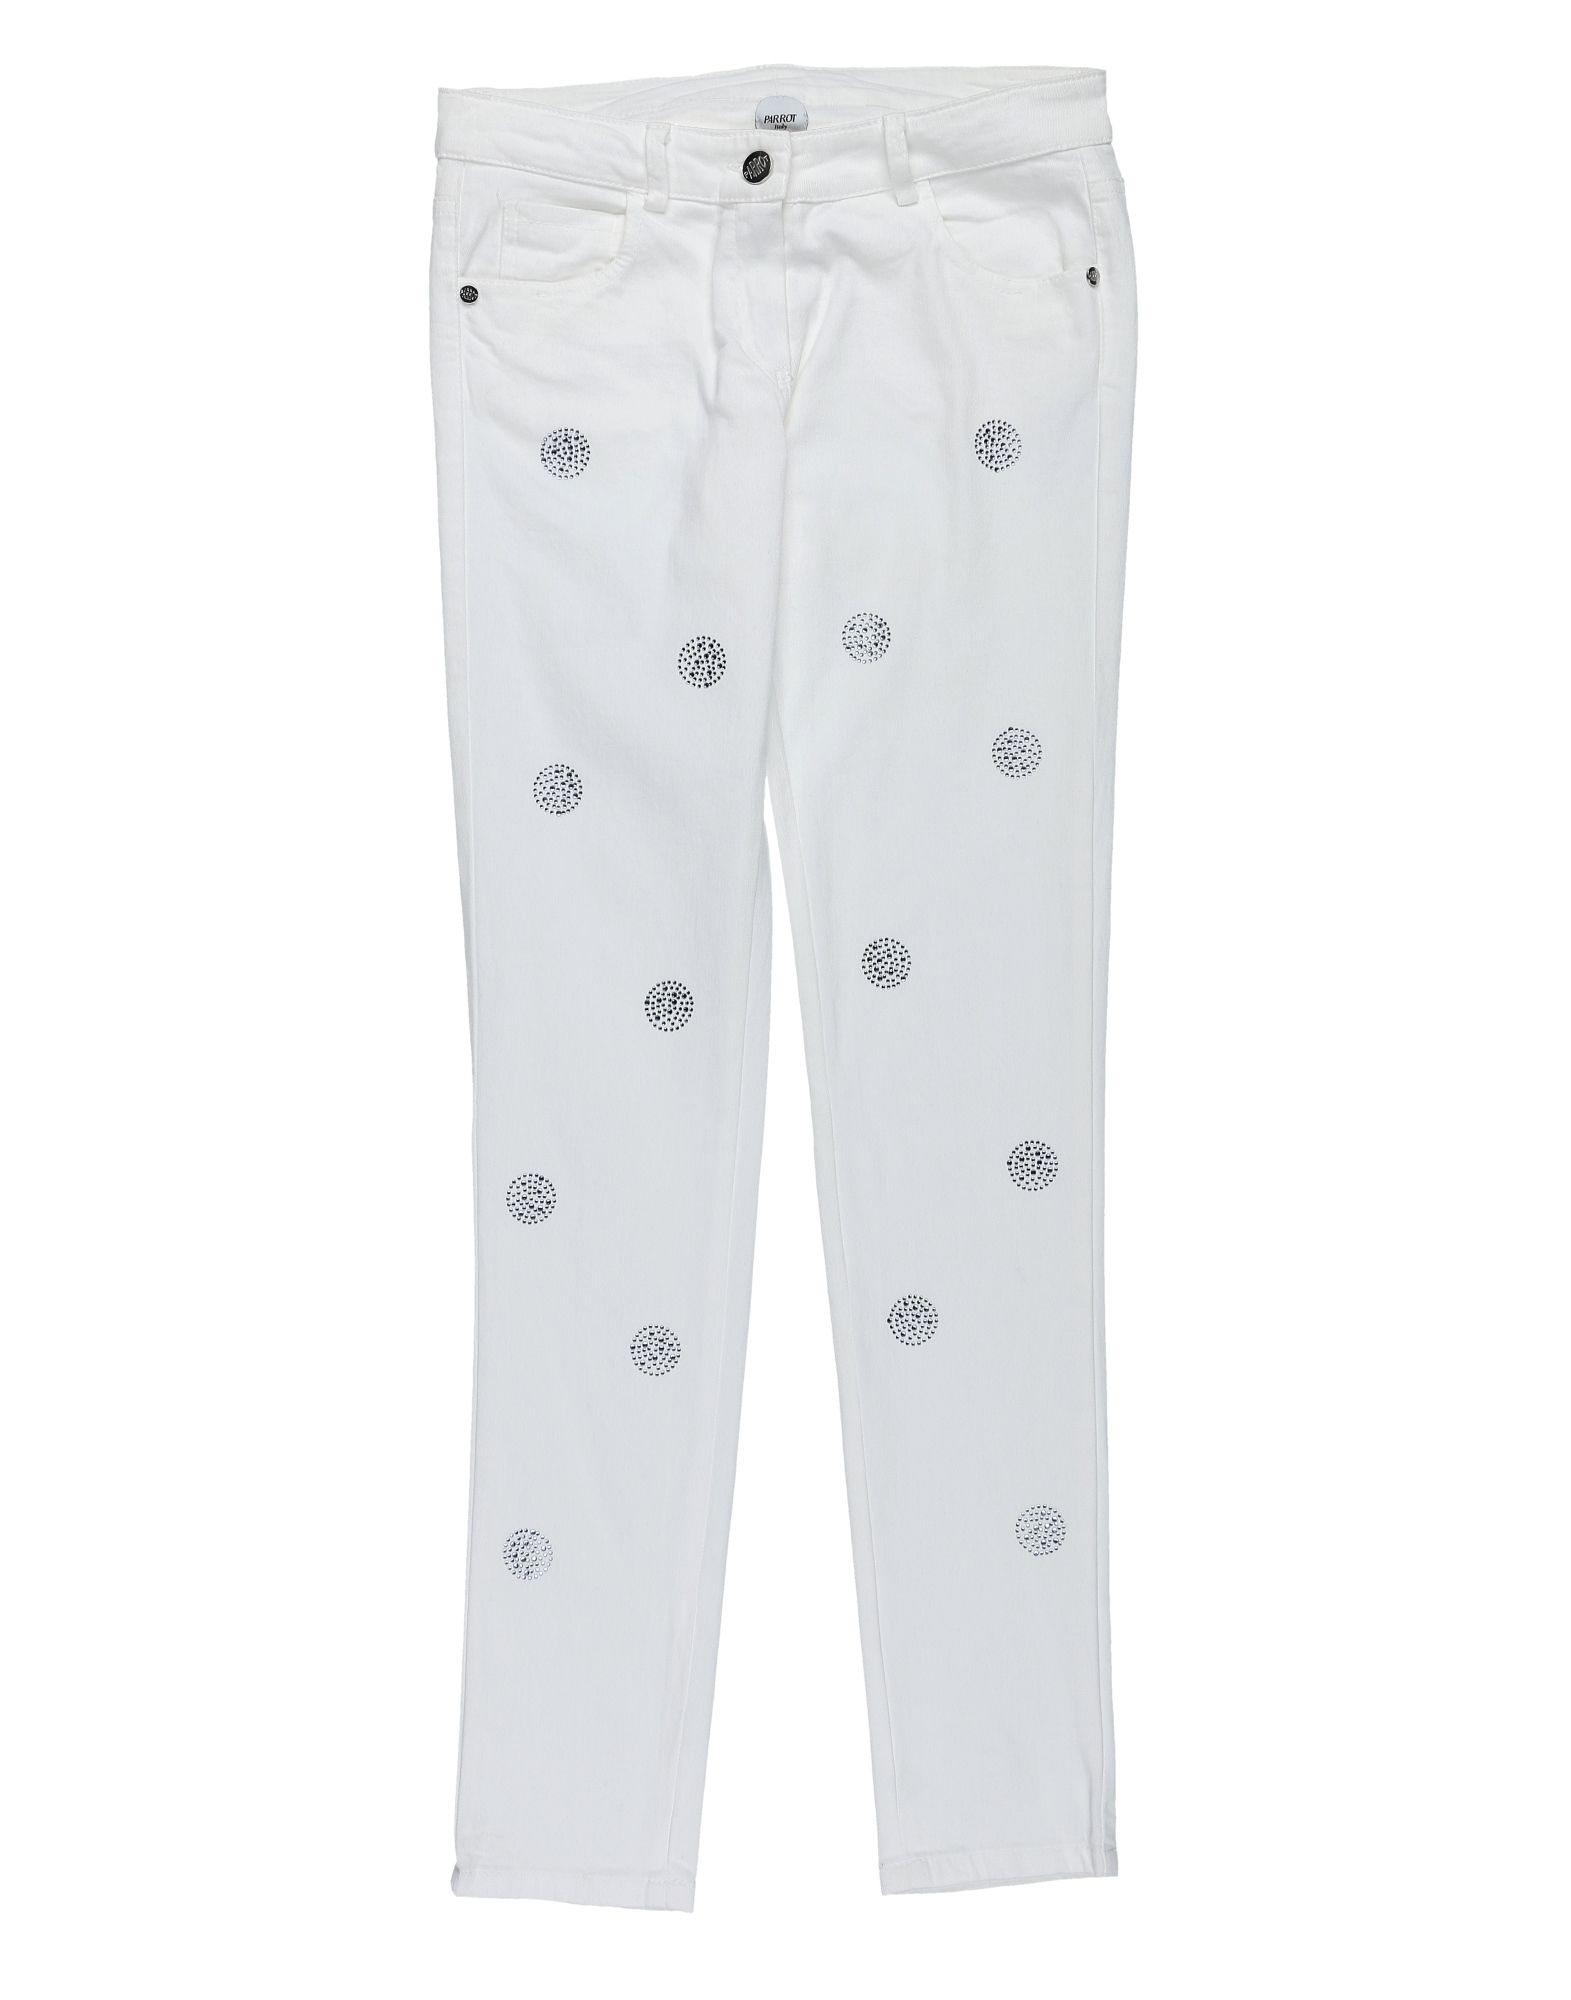 Parrot Kids' Jeans In White